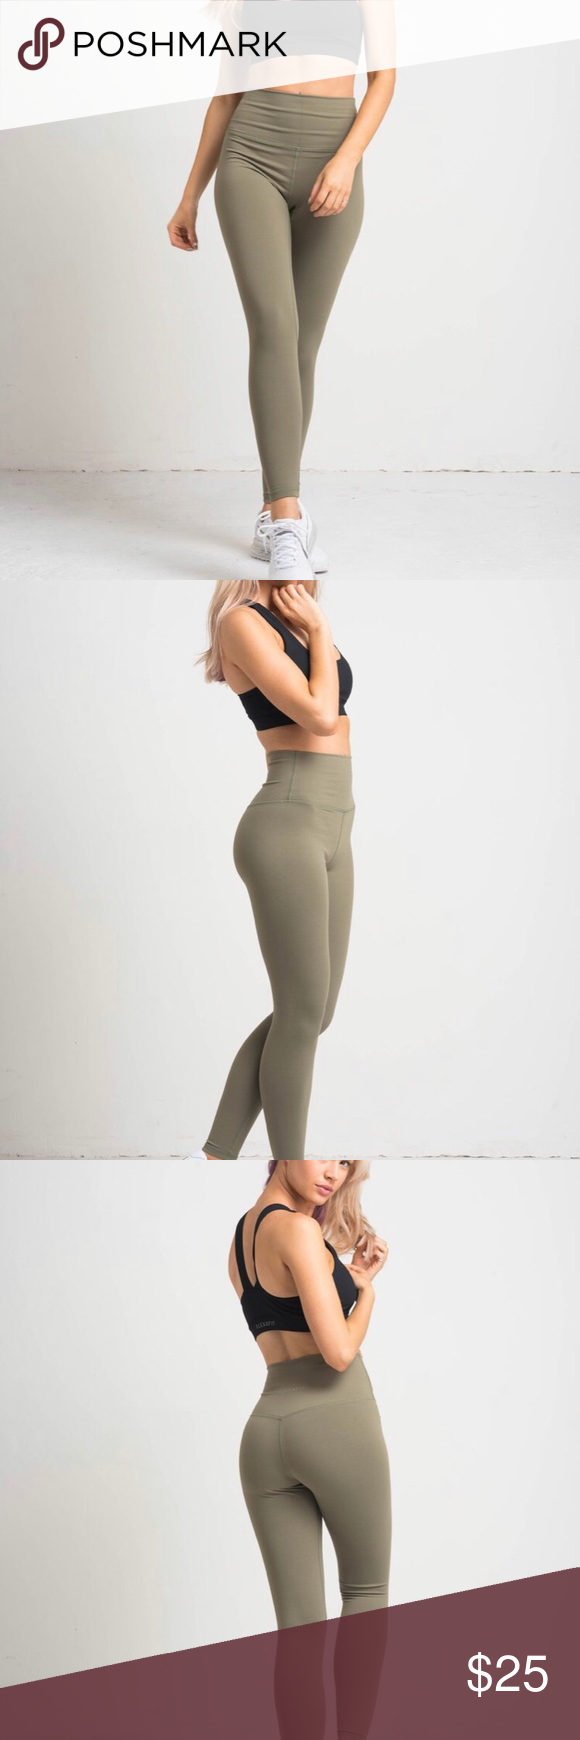 ffea47b8144d3 Flexx Fit LUXE LEGGINGS - KHAKI DREAM Currently sold out on website. Our Luxe  Leggings